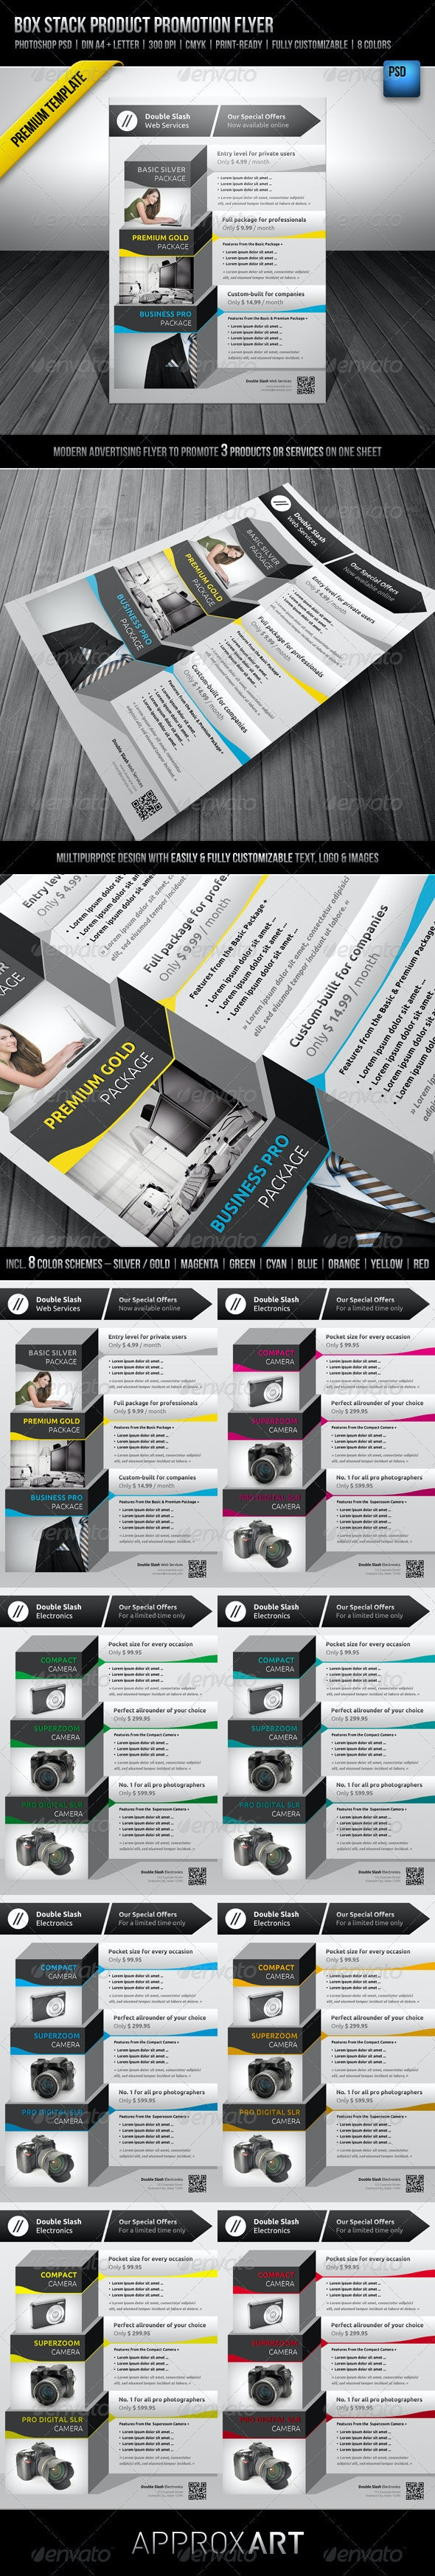 Box Stack Product Promotion Flyer - Commerce Flyers